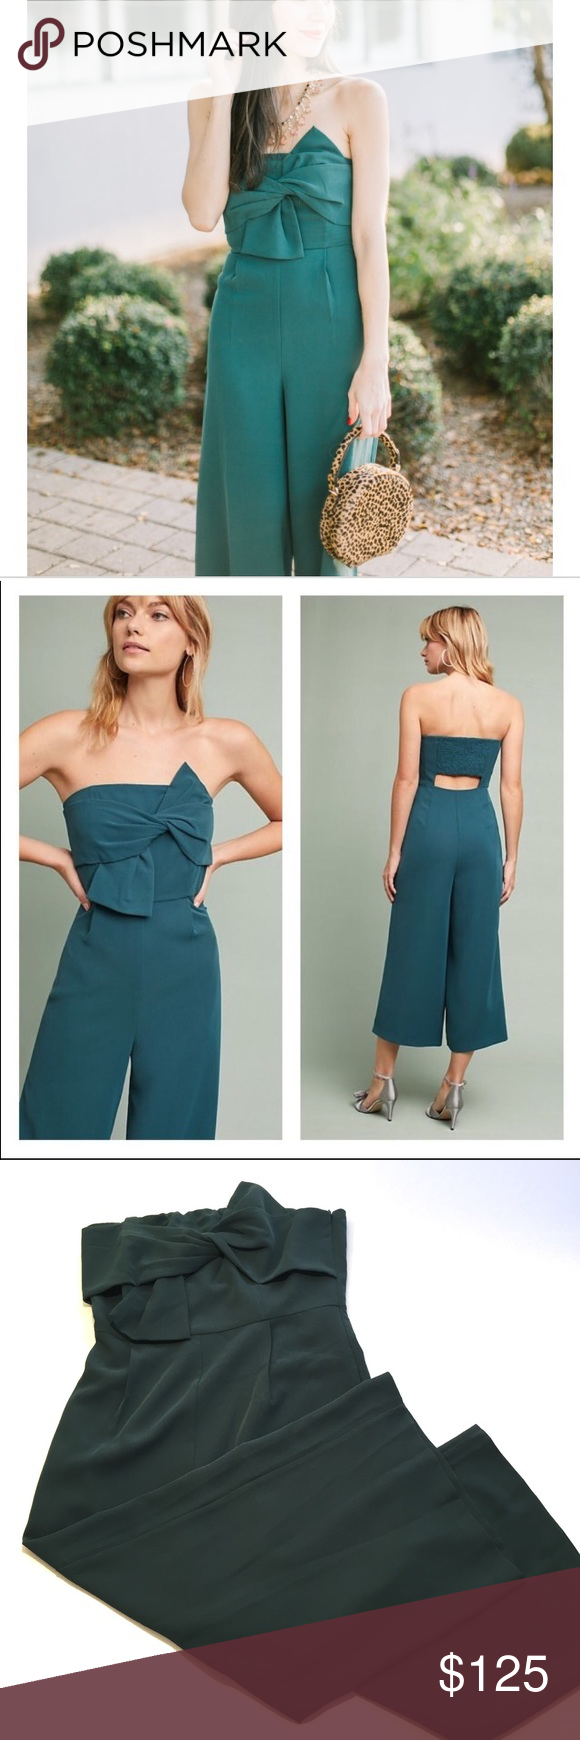 265f7ede7453 Anthropologie Hailee C. Beatty Strapless Jumpsuit Anthropologie Haille C.  Beatty Strapeless Jumpsuit with Bow